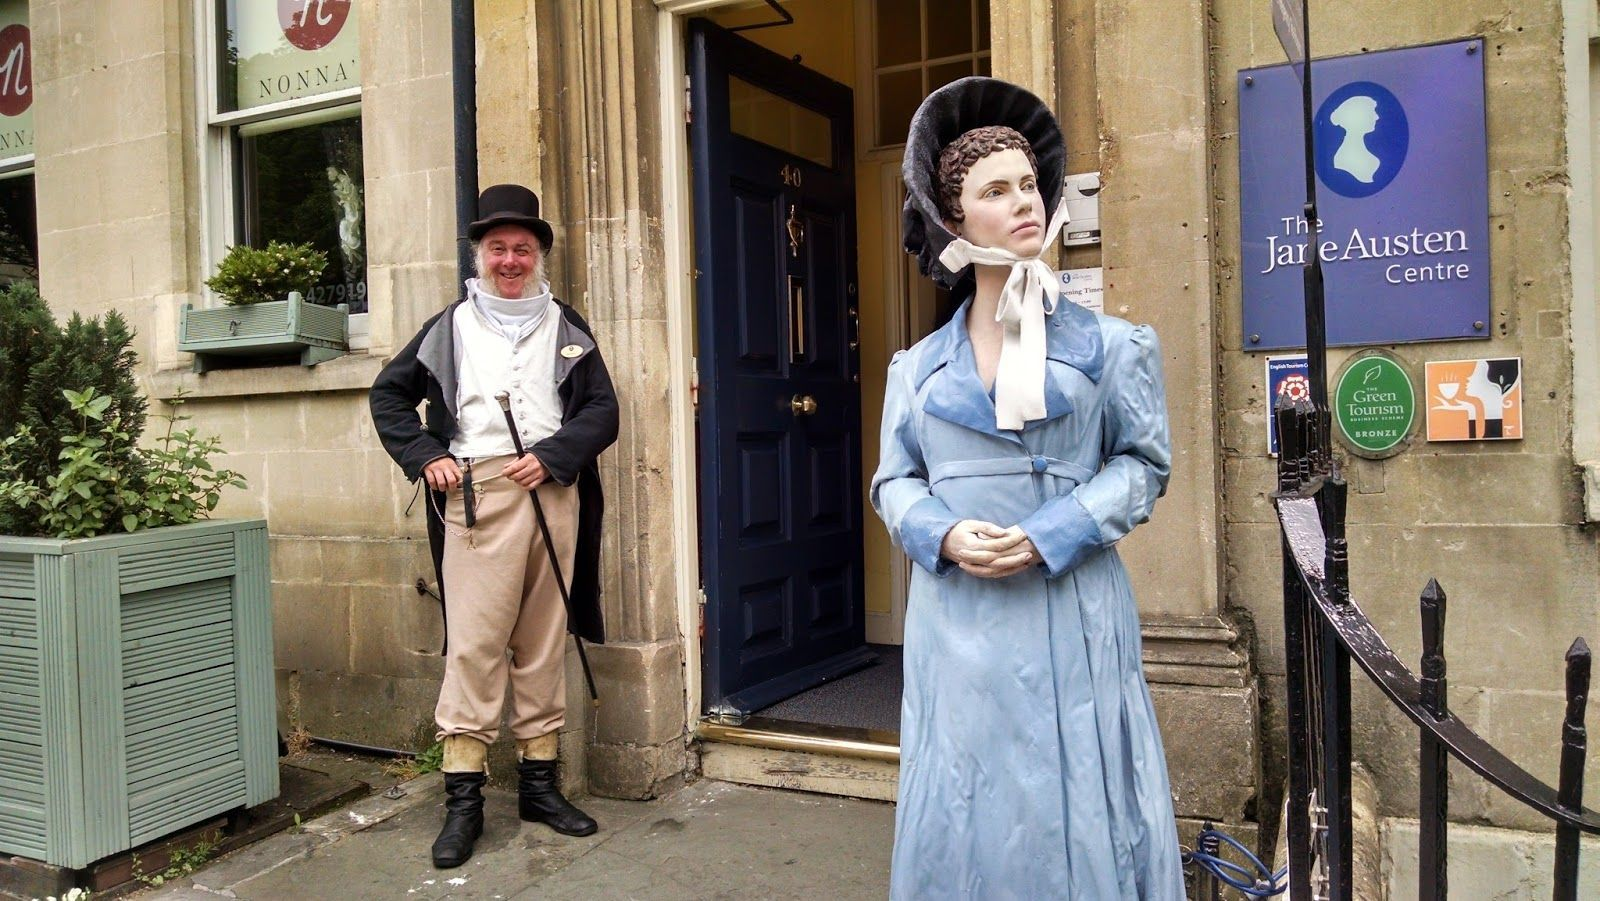 Bath's best museums - the Jane Austen Centre is a must for fans of the author.